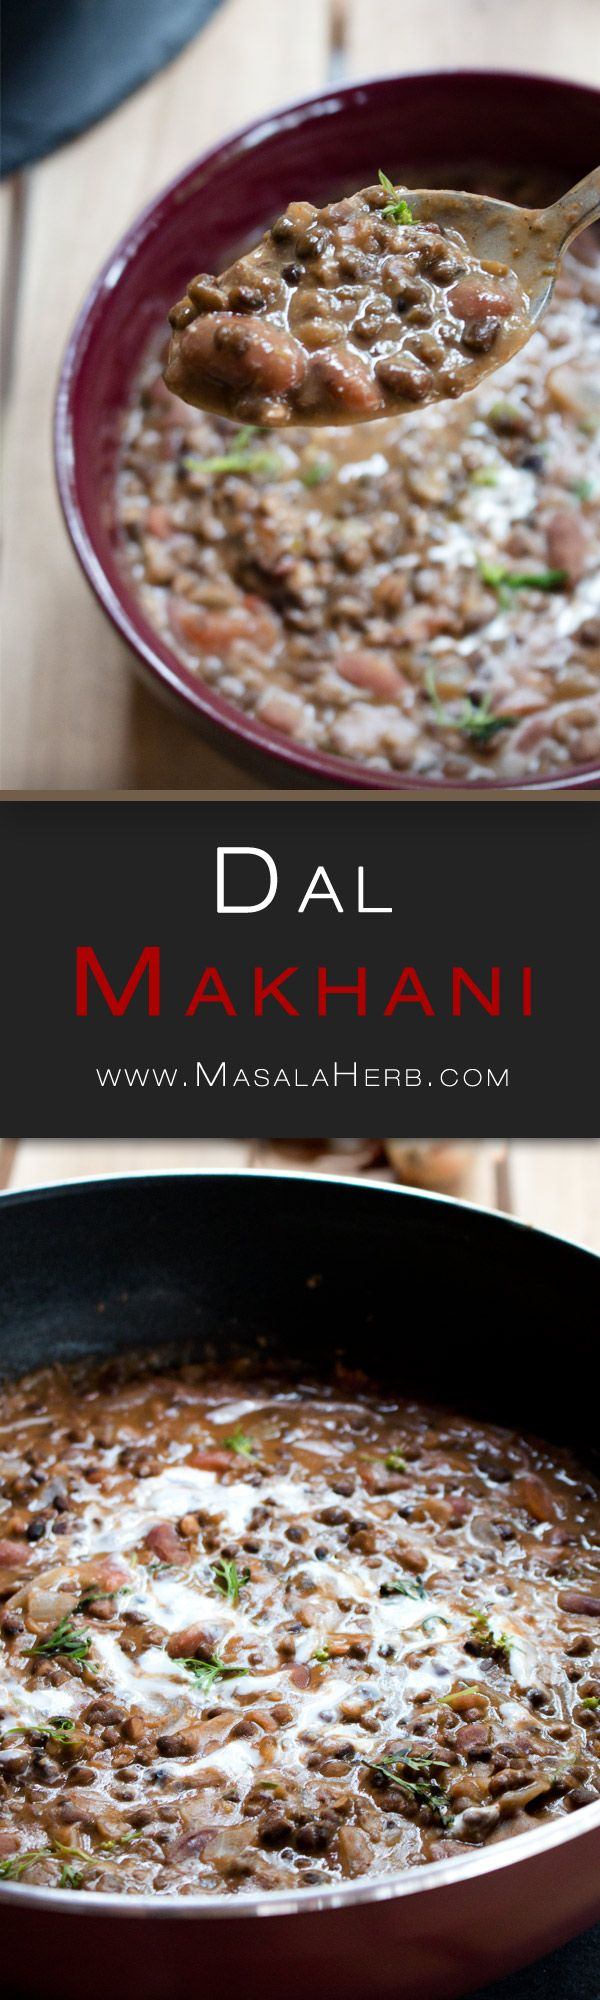 641 best vegetarian indian food images on pinterest indian recipes dal makhani recipe how to make dal makhani curry video spiced indian butter forumfinder Images